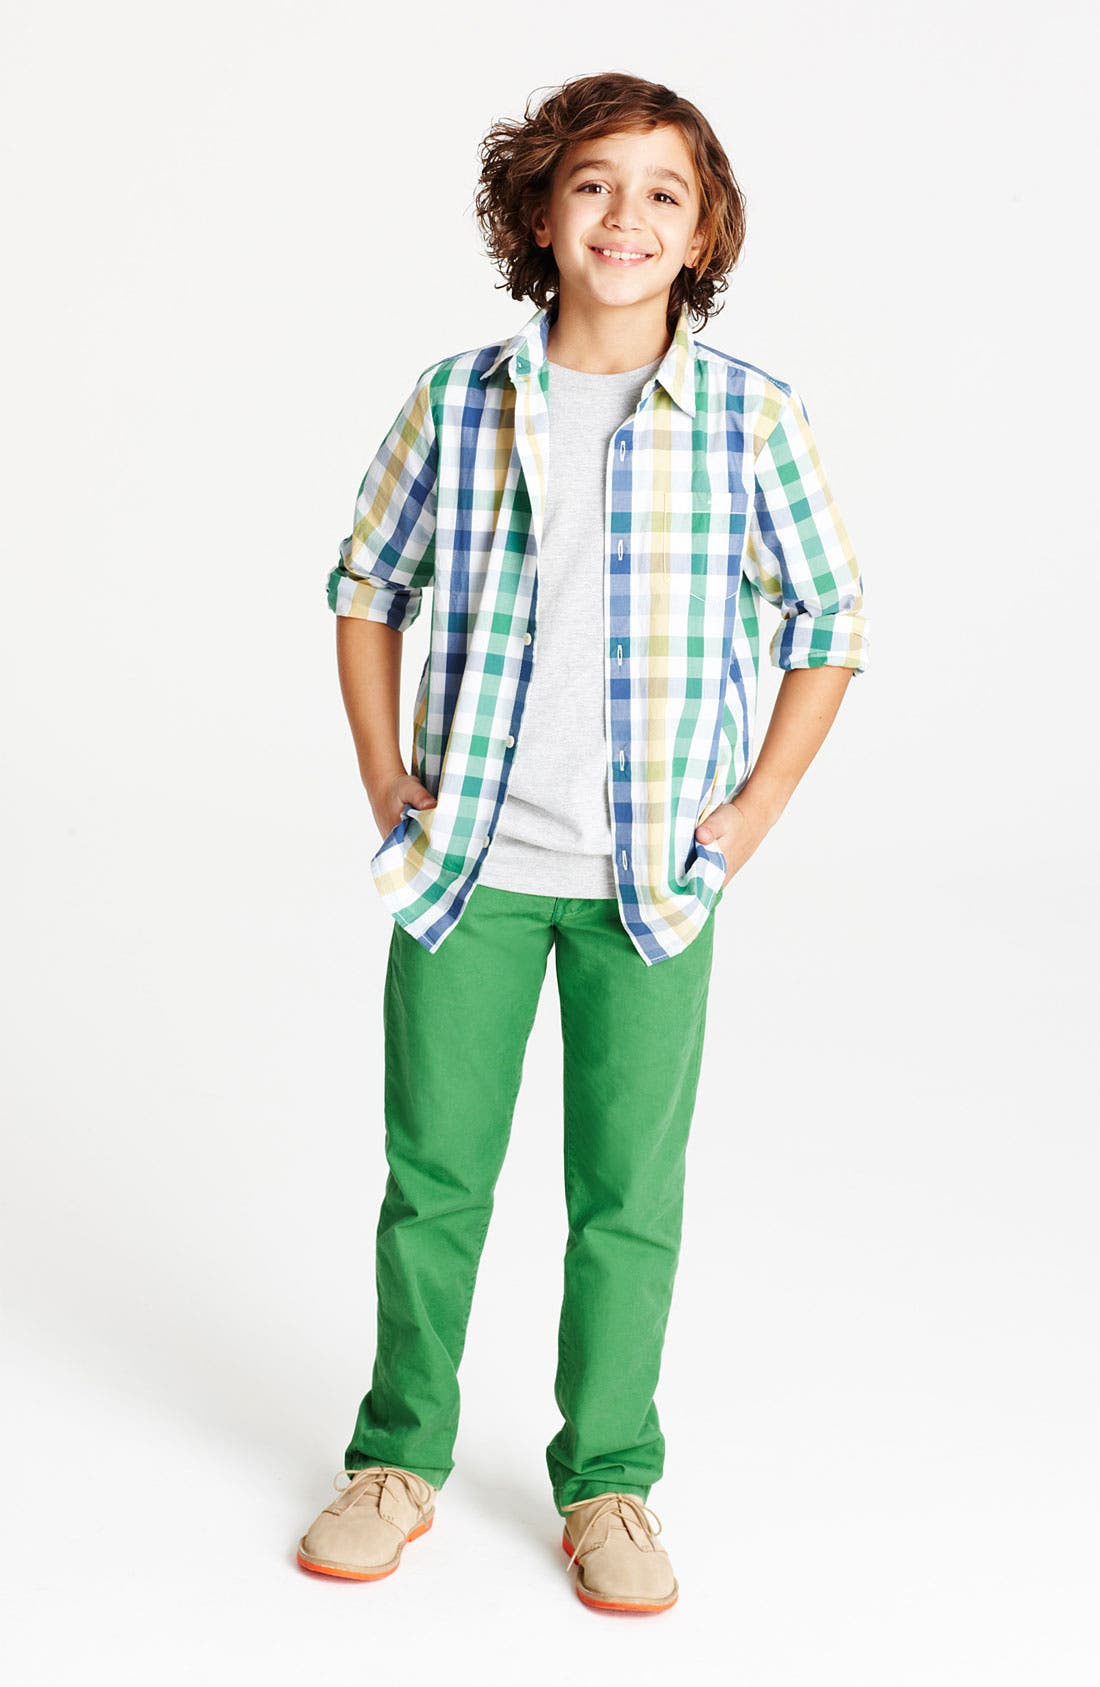 Main Image - Tucker + Tate Poplin Shirt, T-Shirt, Chino Pants & Boot (Big Boys)